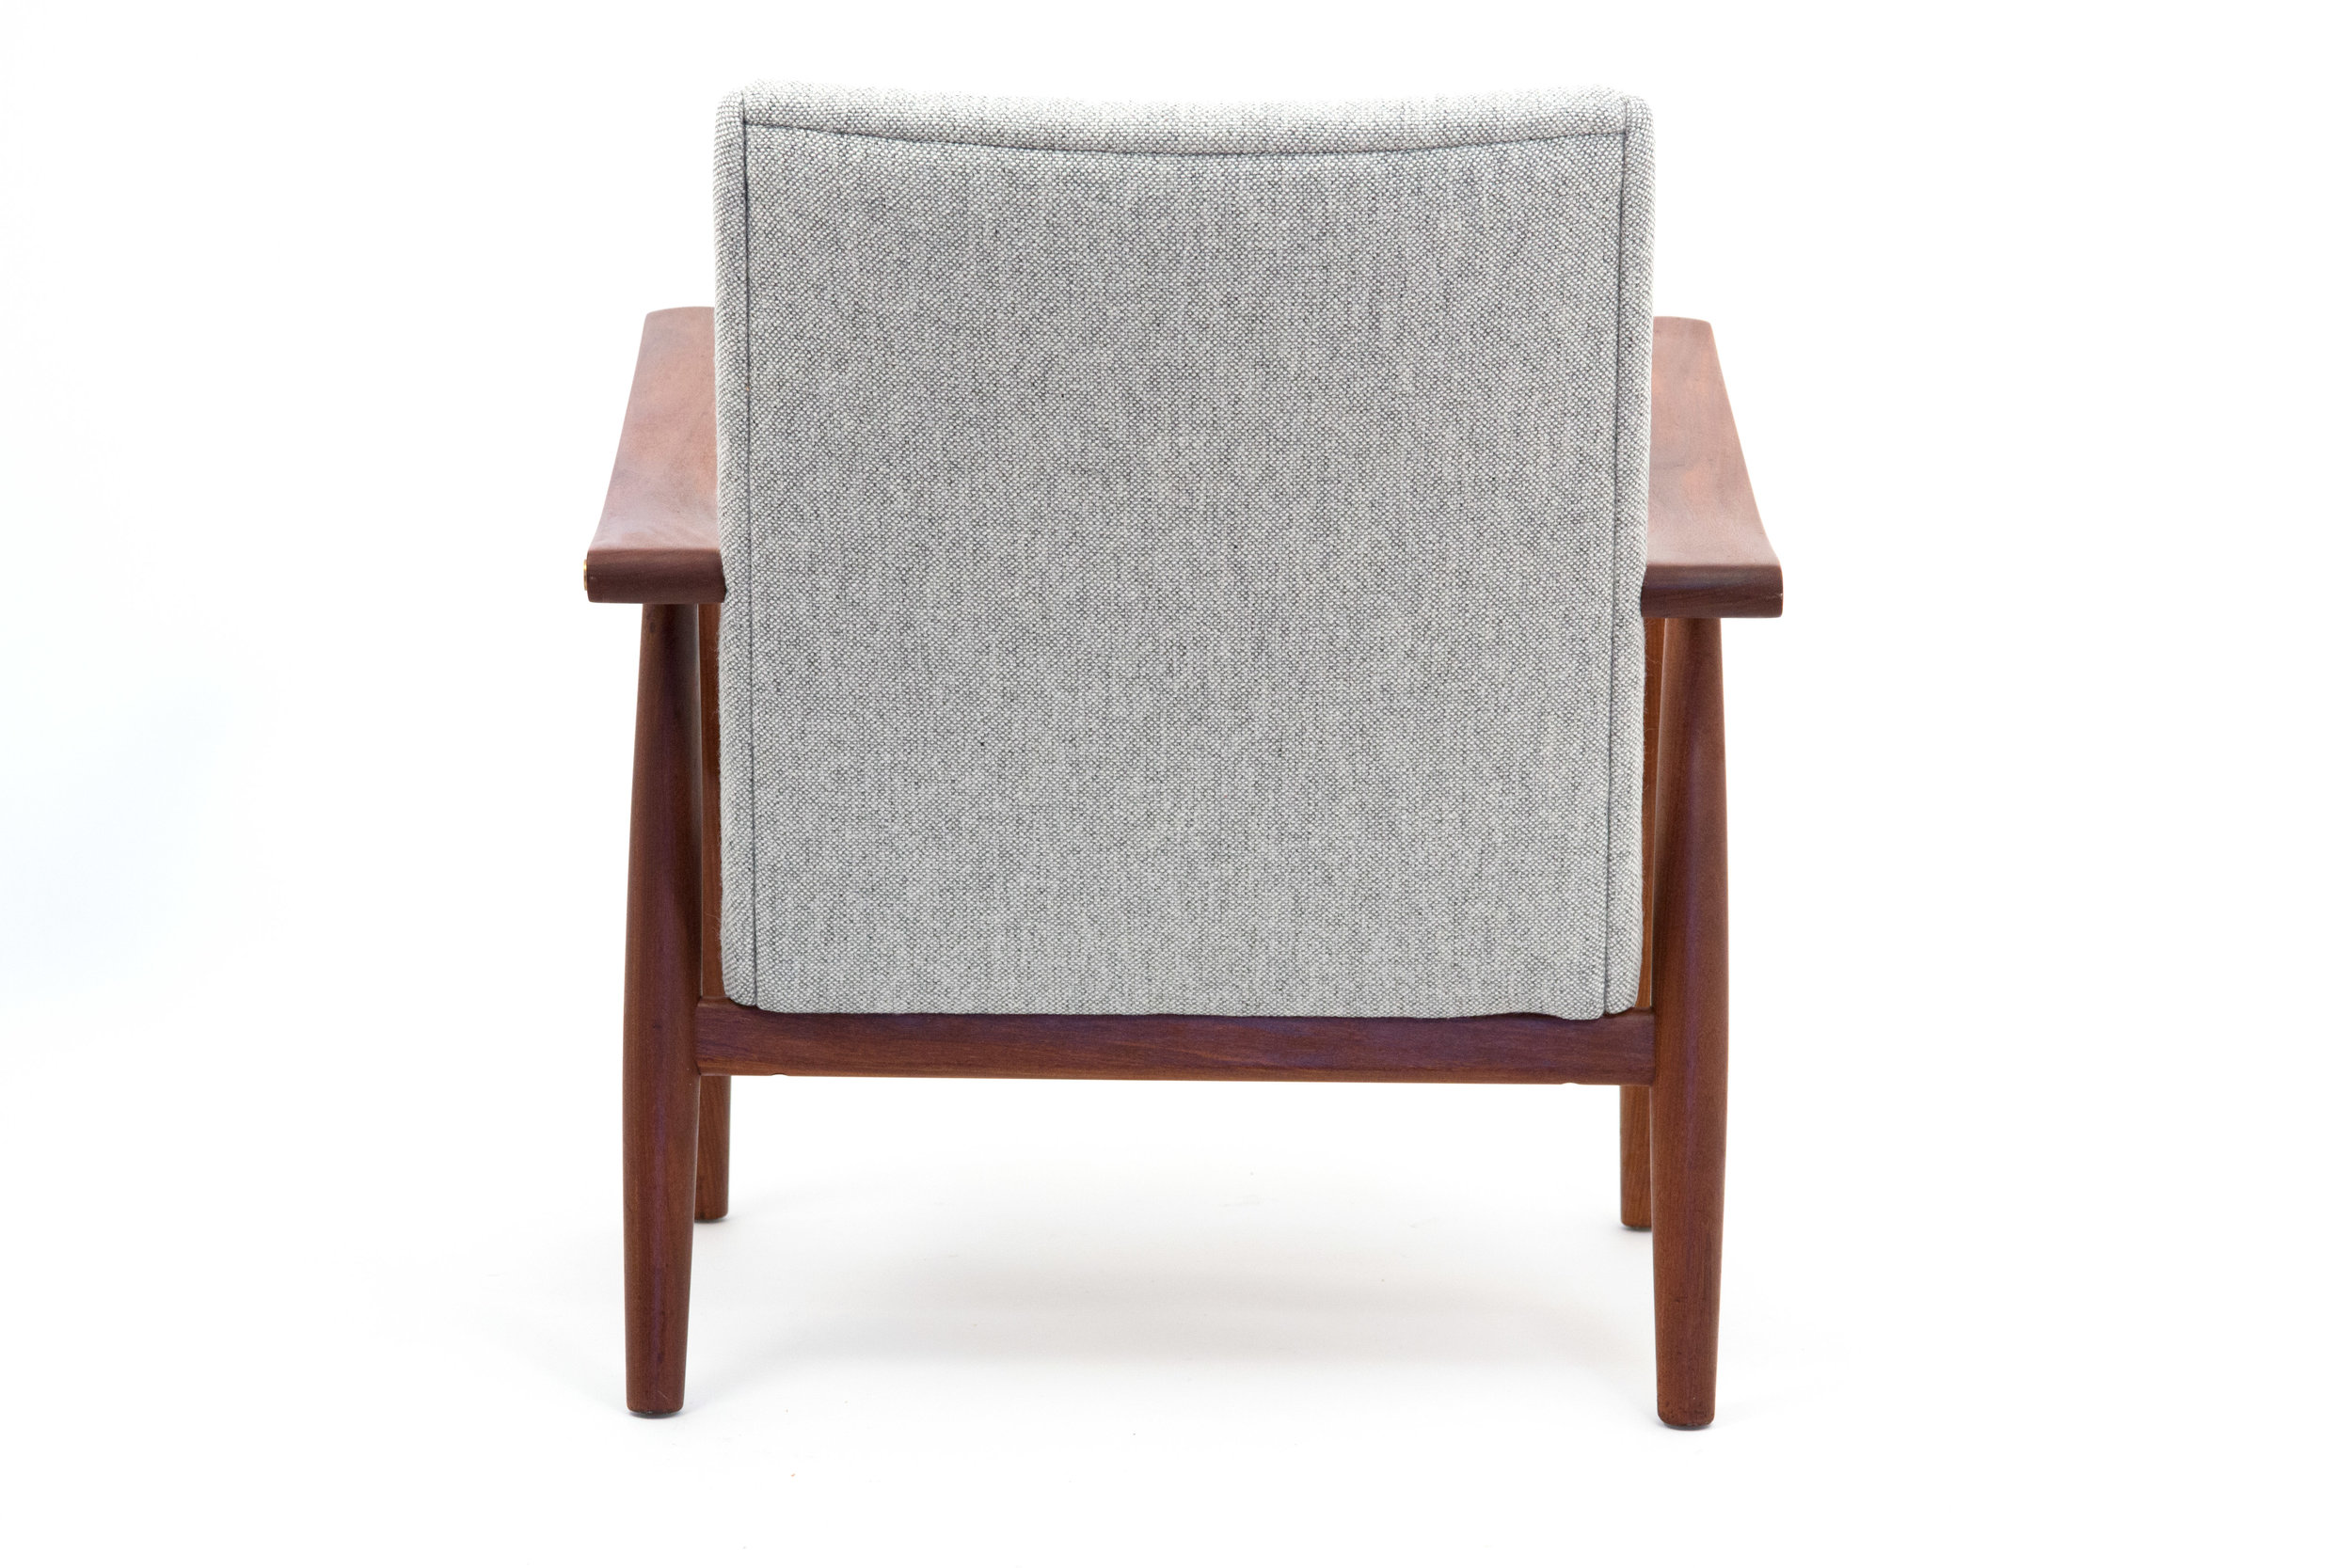 Grey chair 4 copy.jpg